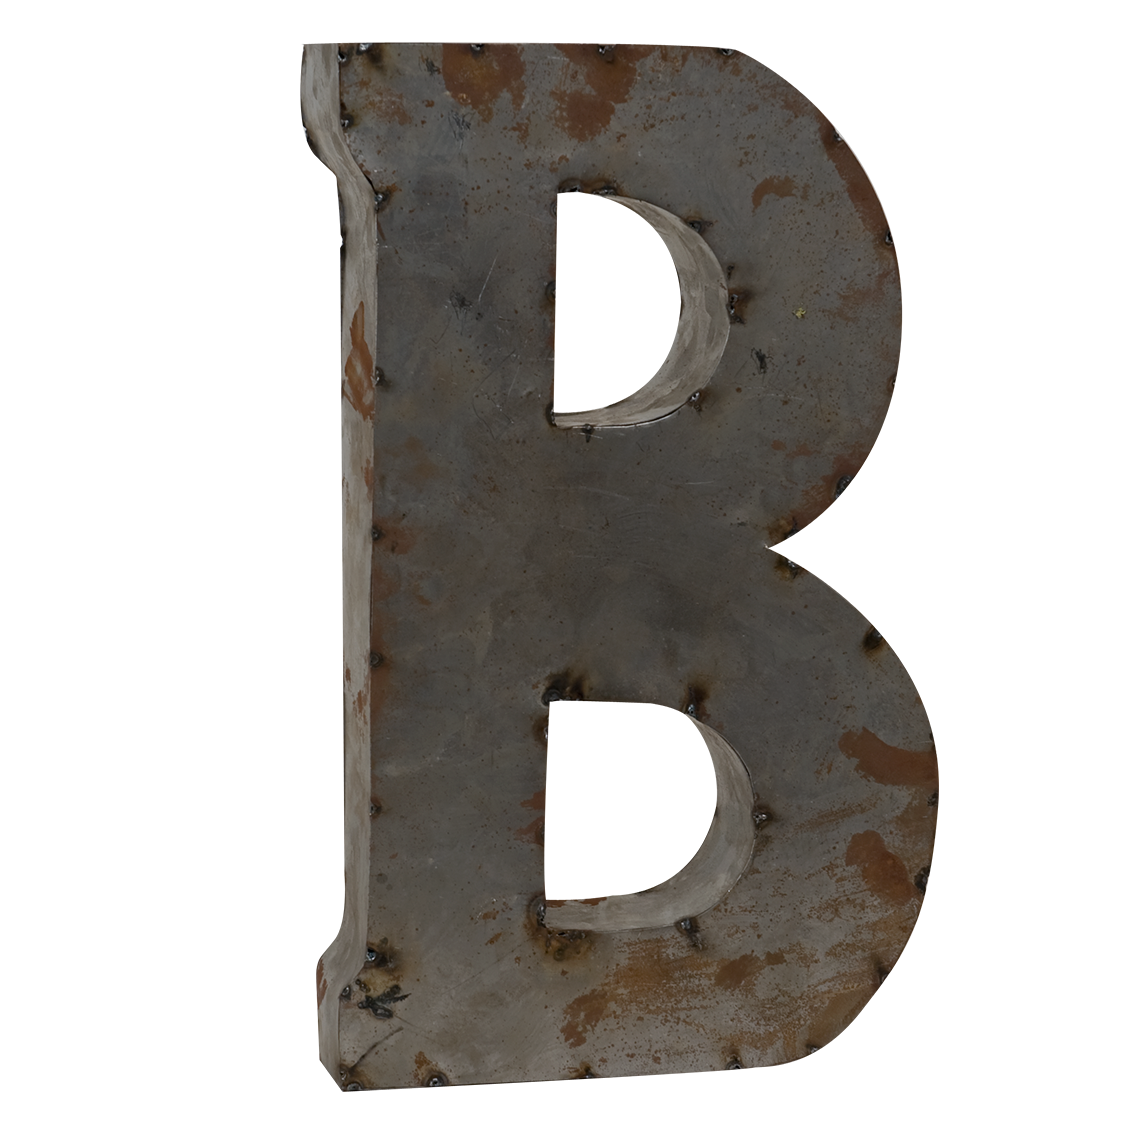 Tin Letters For Walls Reclaimed Tin Letter B  Rust And Metals